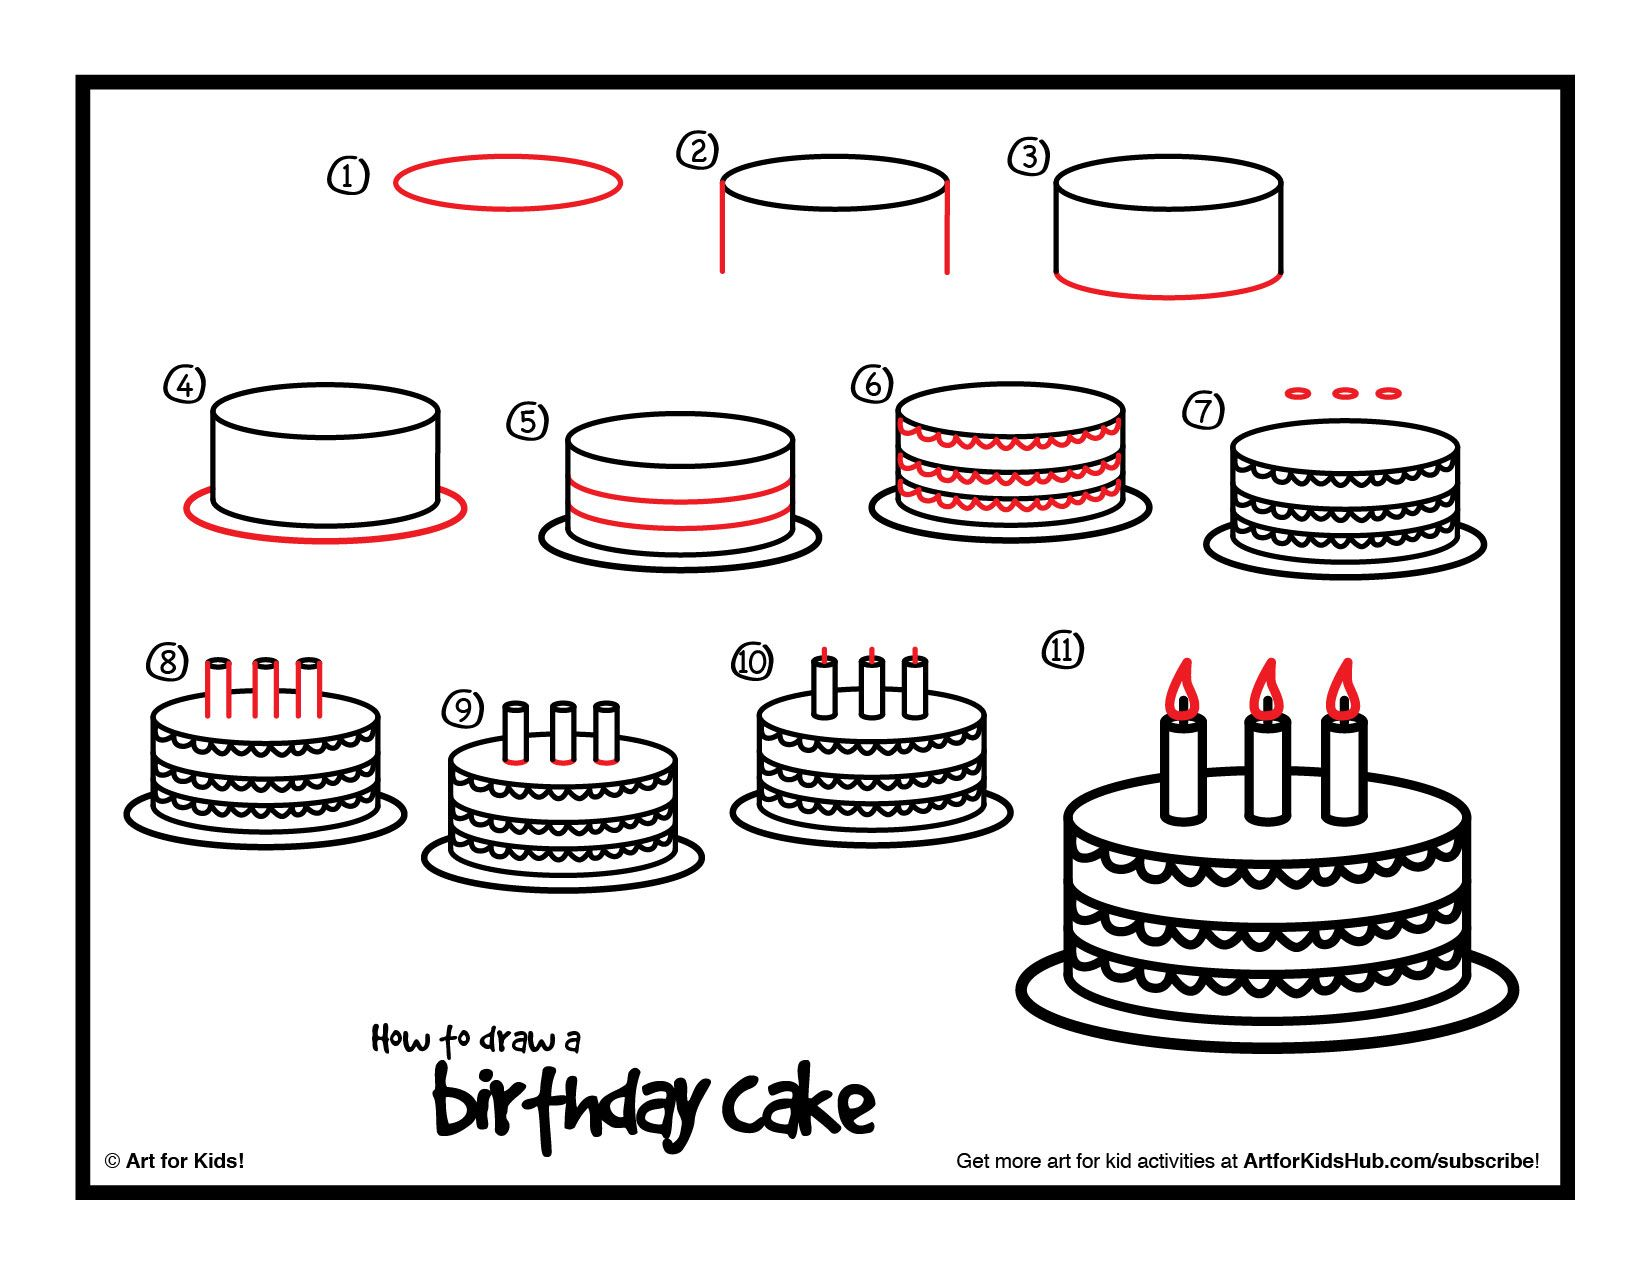 How To Draw A Birthday Cake Art For Kids Hub Doodle Bug